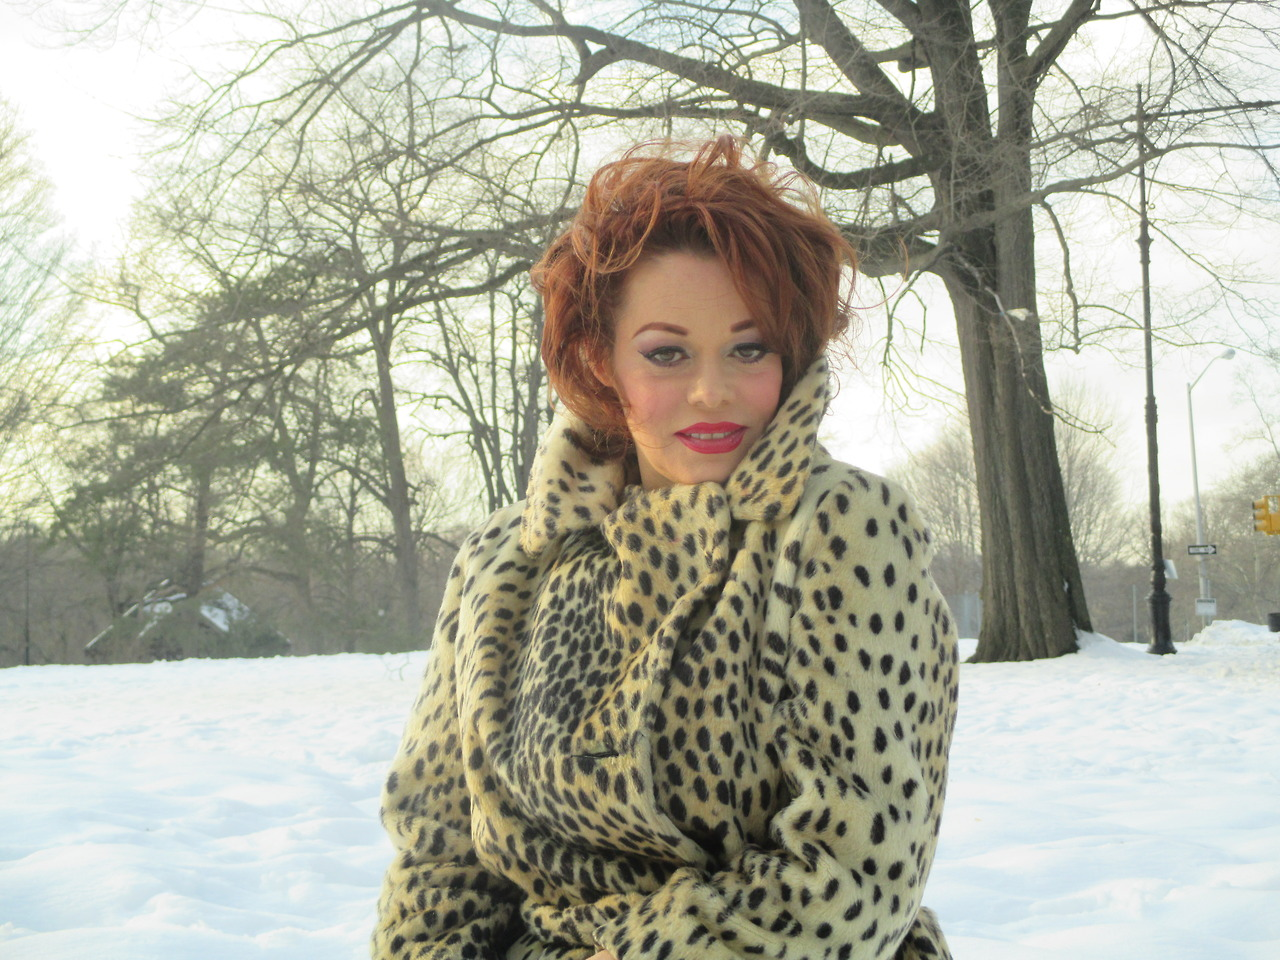 Happy valenTIME  ! 2014  from snowy brooklyn… https://soundcloud.com/lady-miss-kier/dee-jay-lady-miss-kier-nu-acid photo by ; Emme Irwin